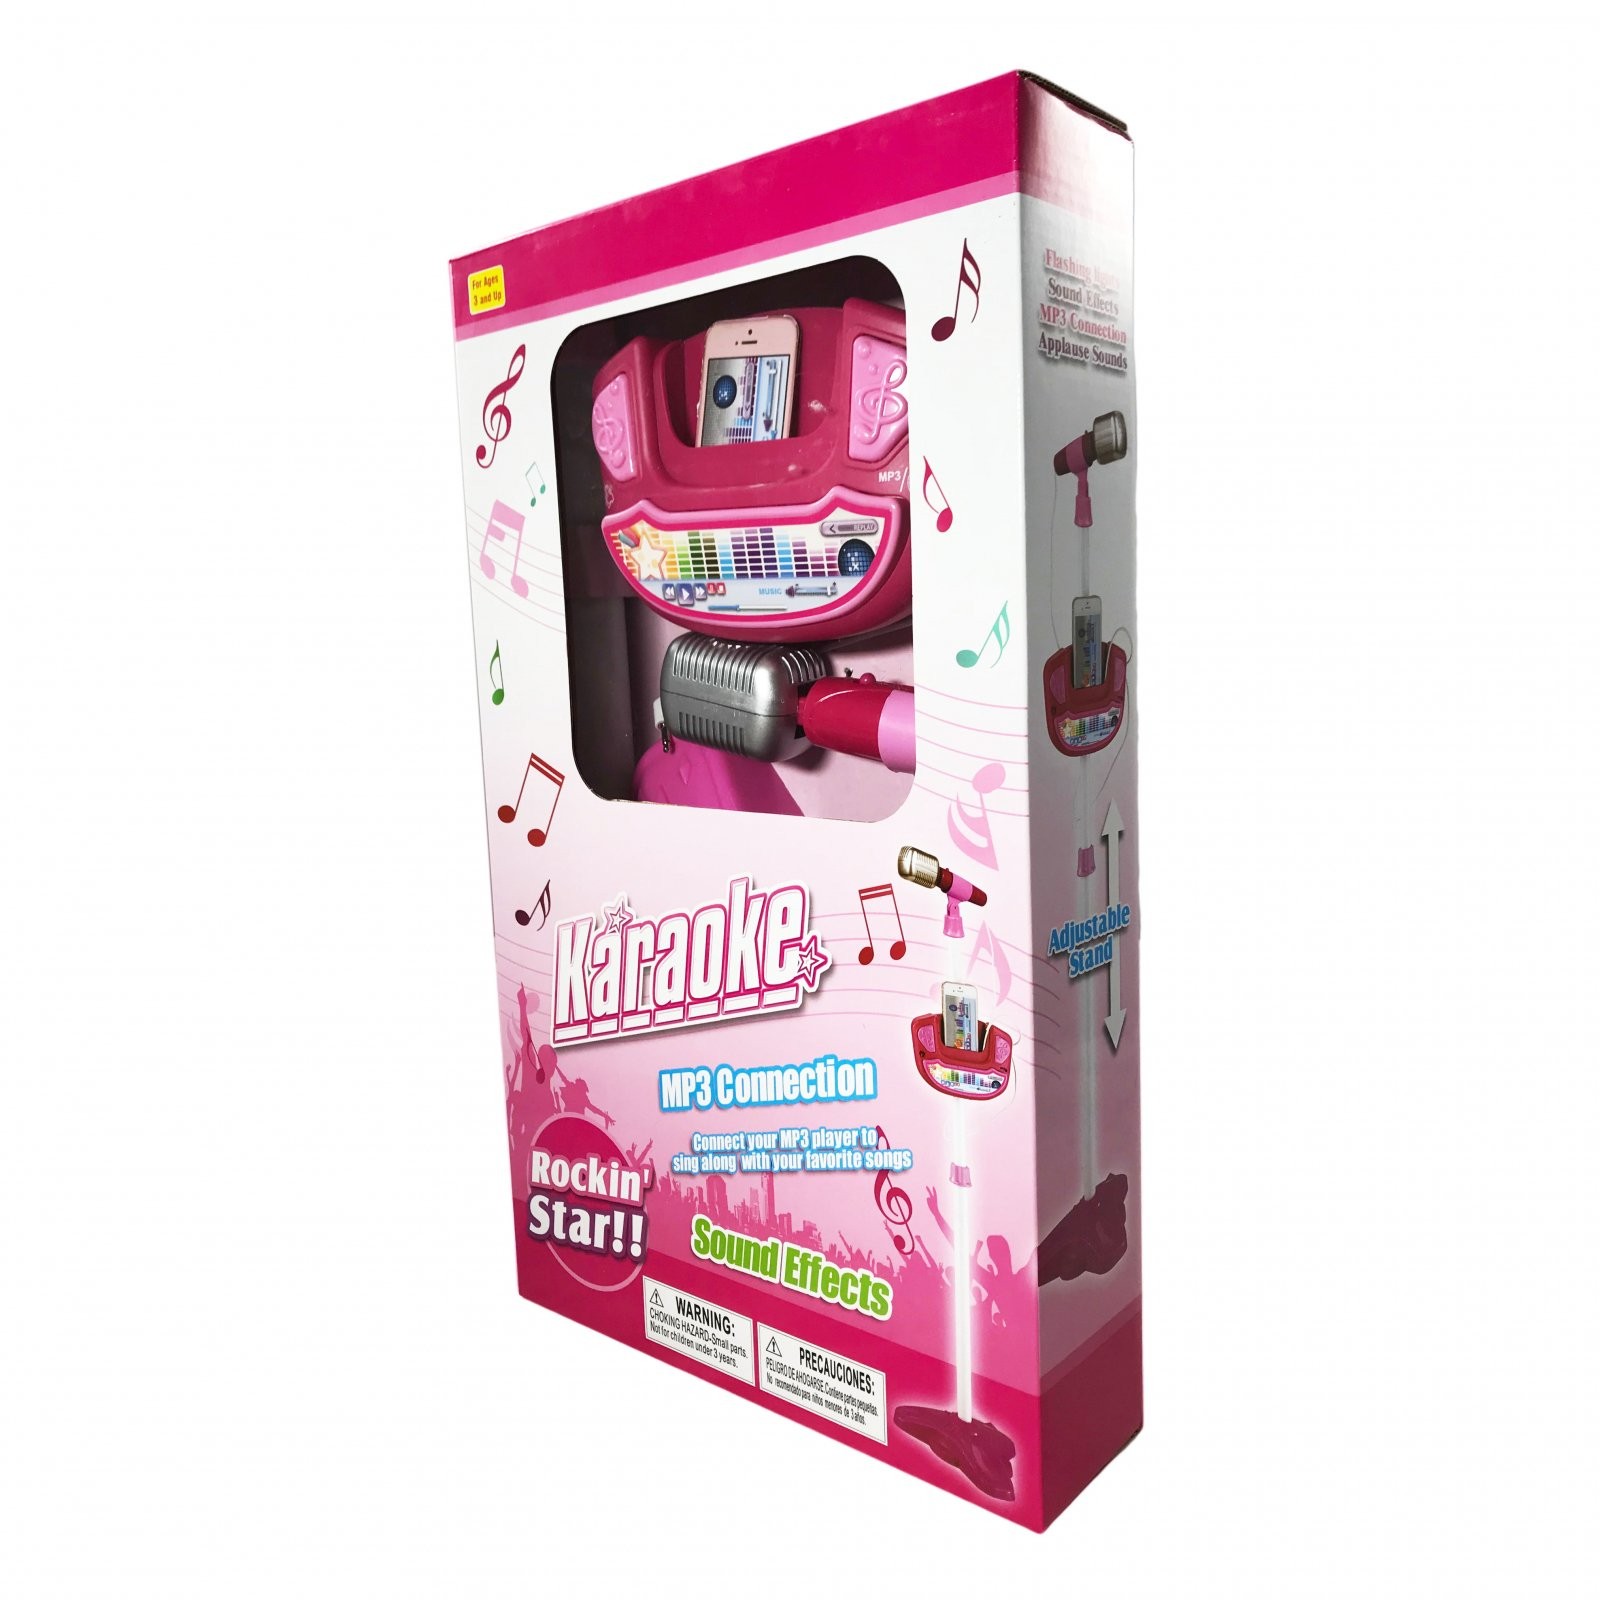 Kids Play Time Musical Microphone Karaoke Machine MP3 Singing With Stand - Pink